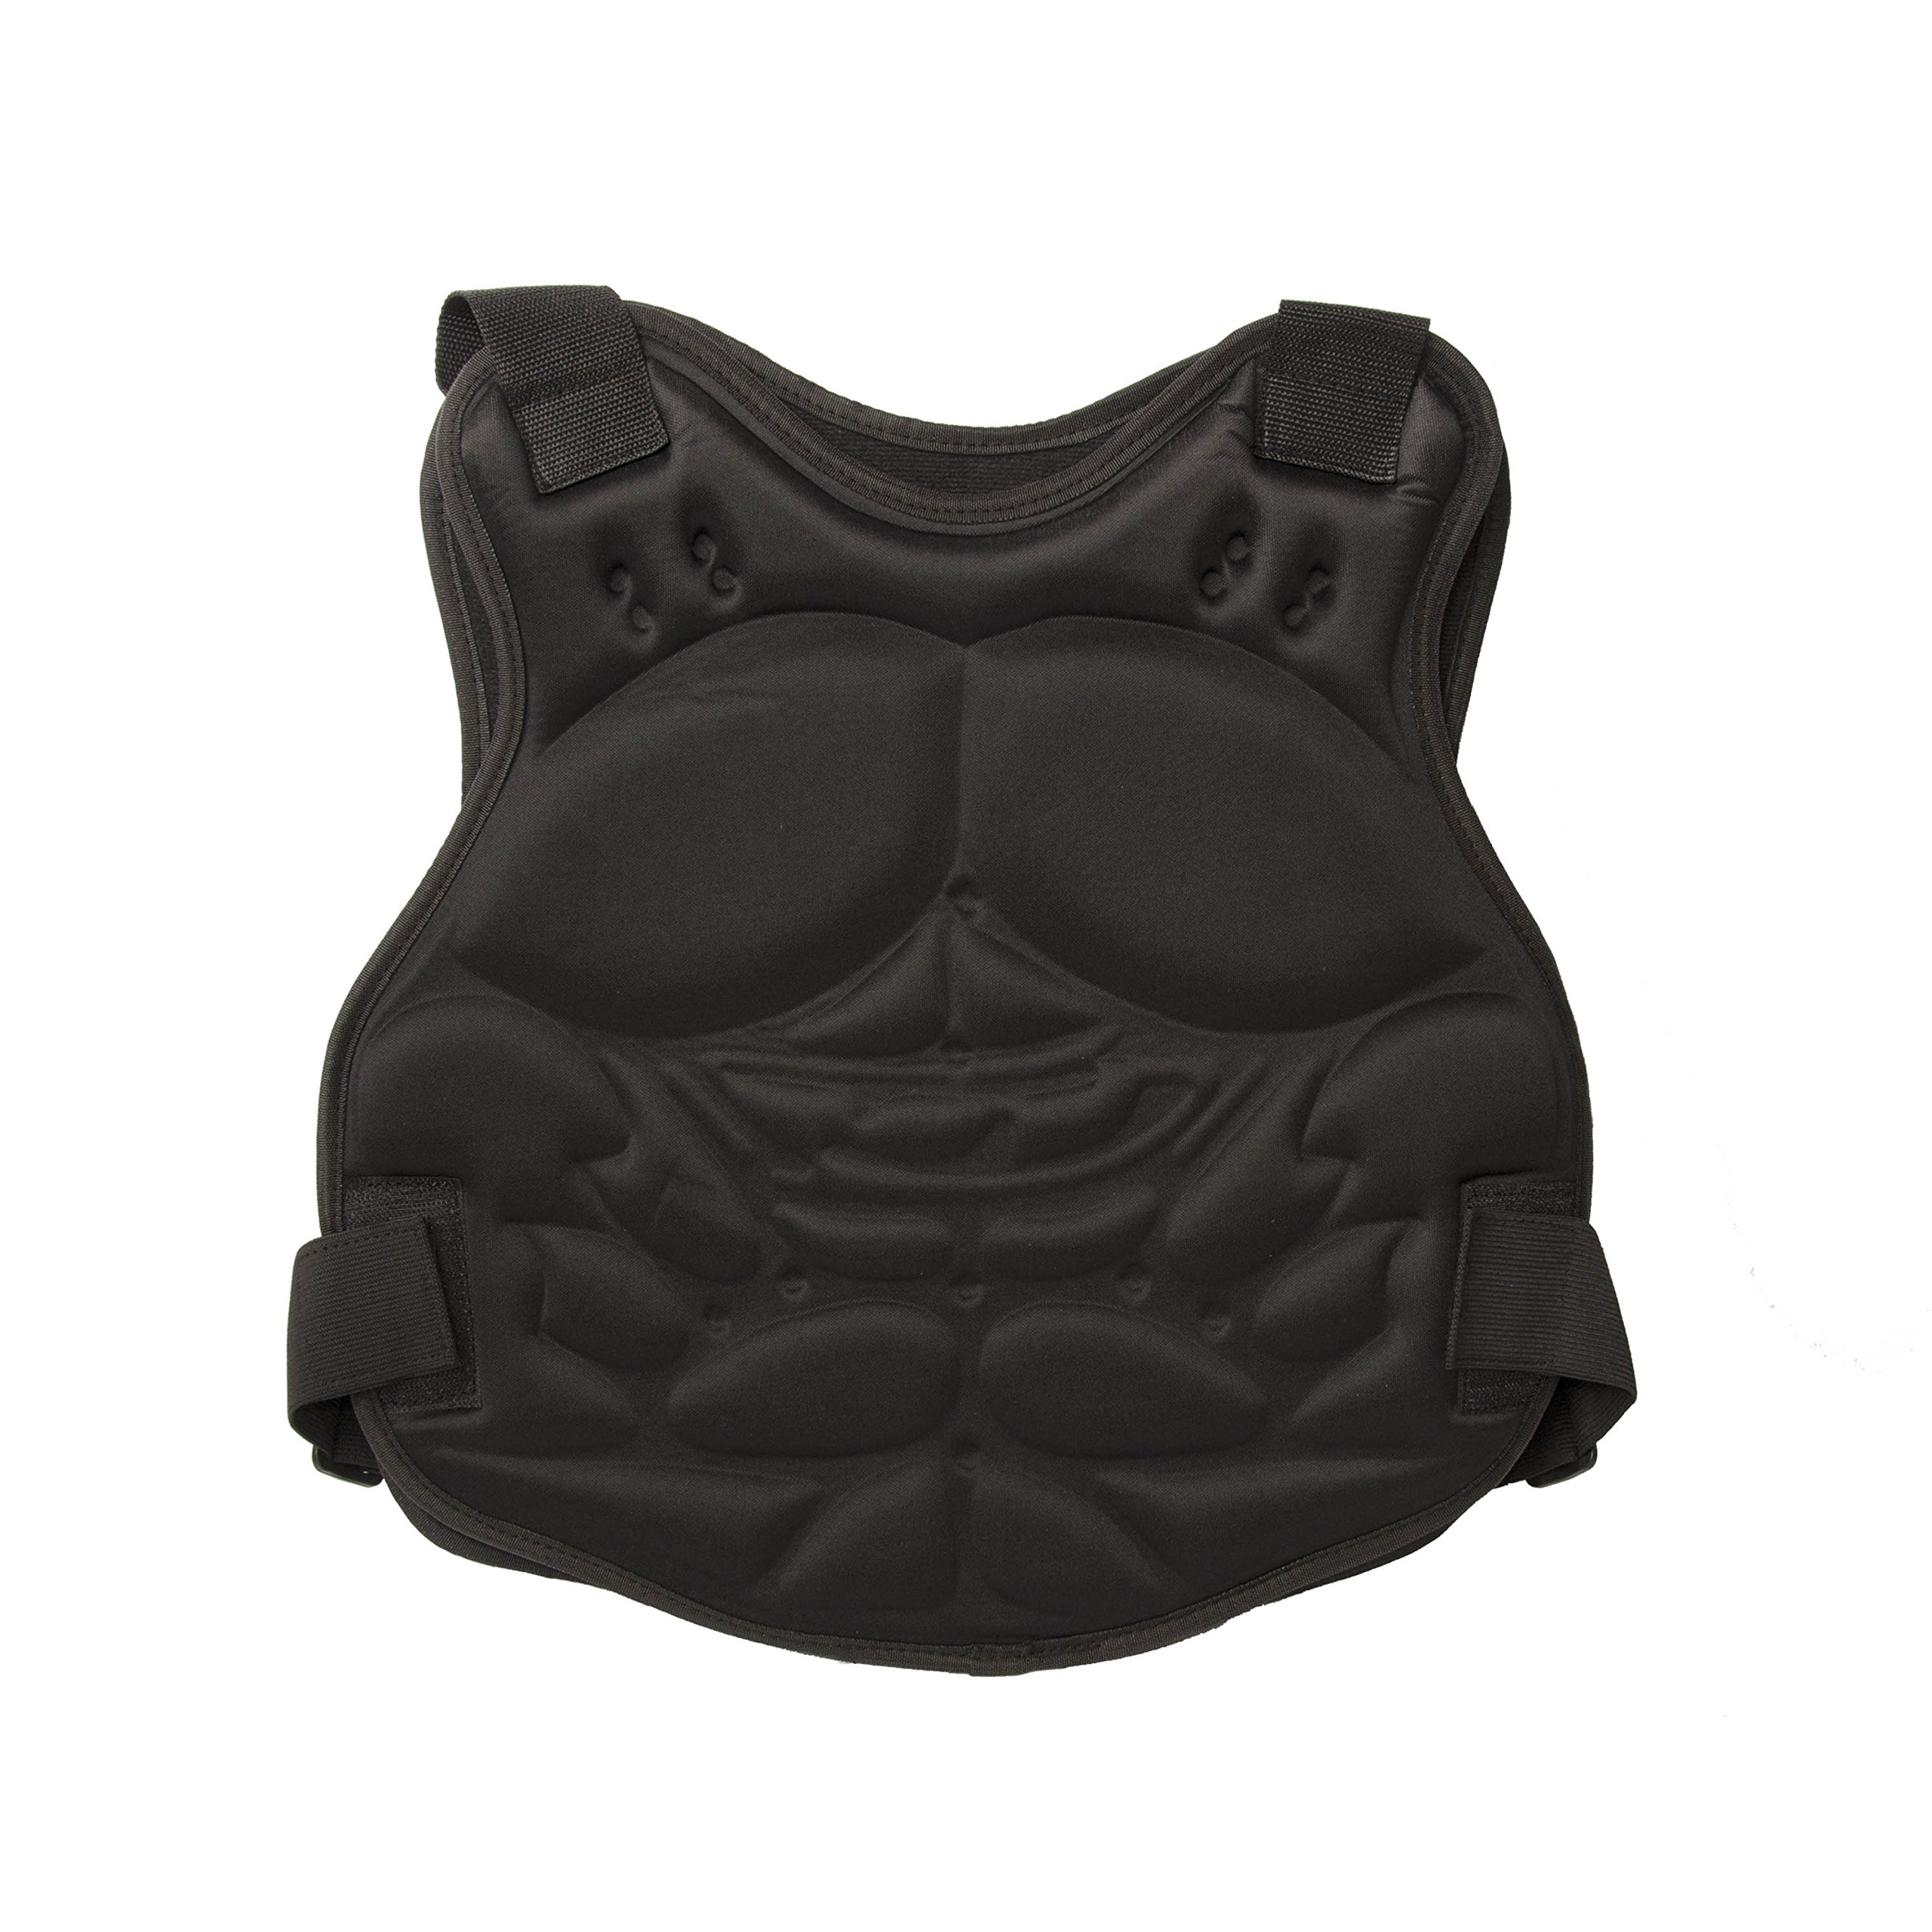 ALEKO PBCPV53 Paintball Airsoft Chest Protector Tactical Vest Outdoor Sports Body Armor Camouflage by ALEKO